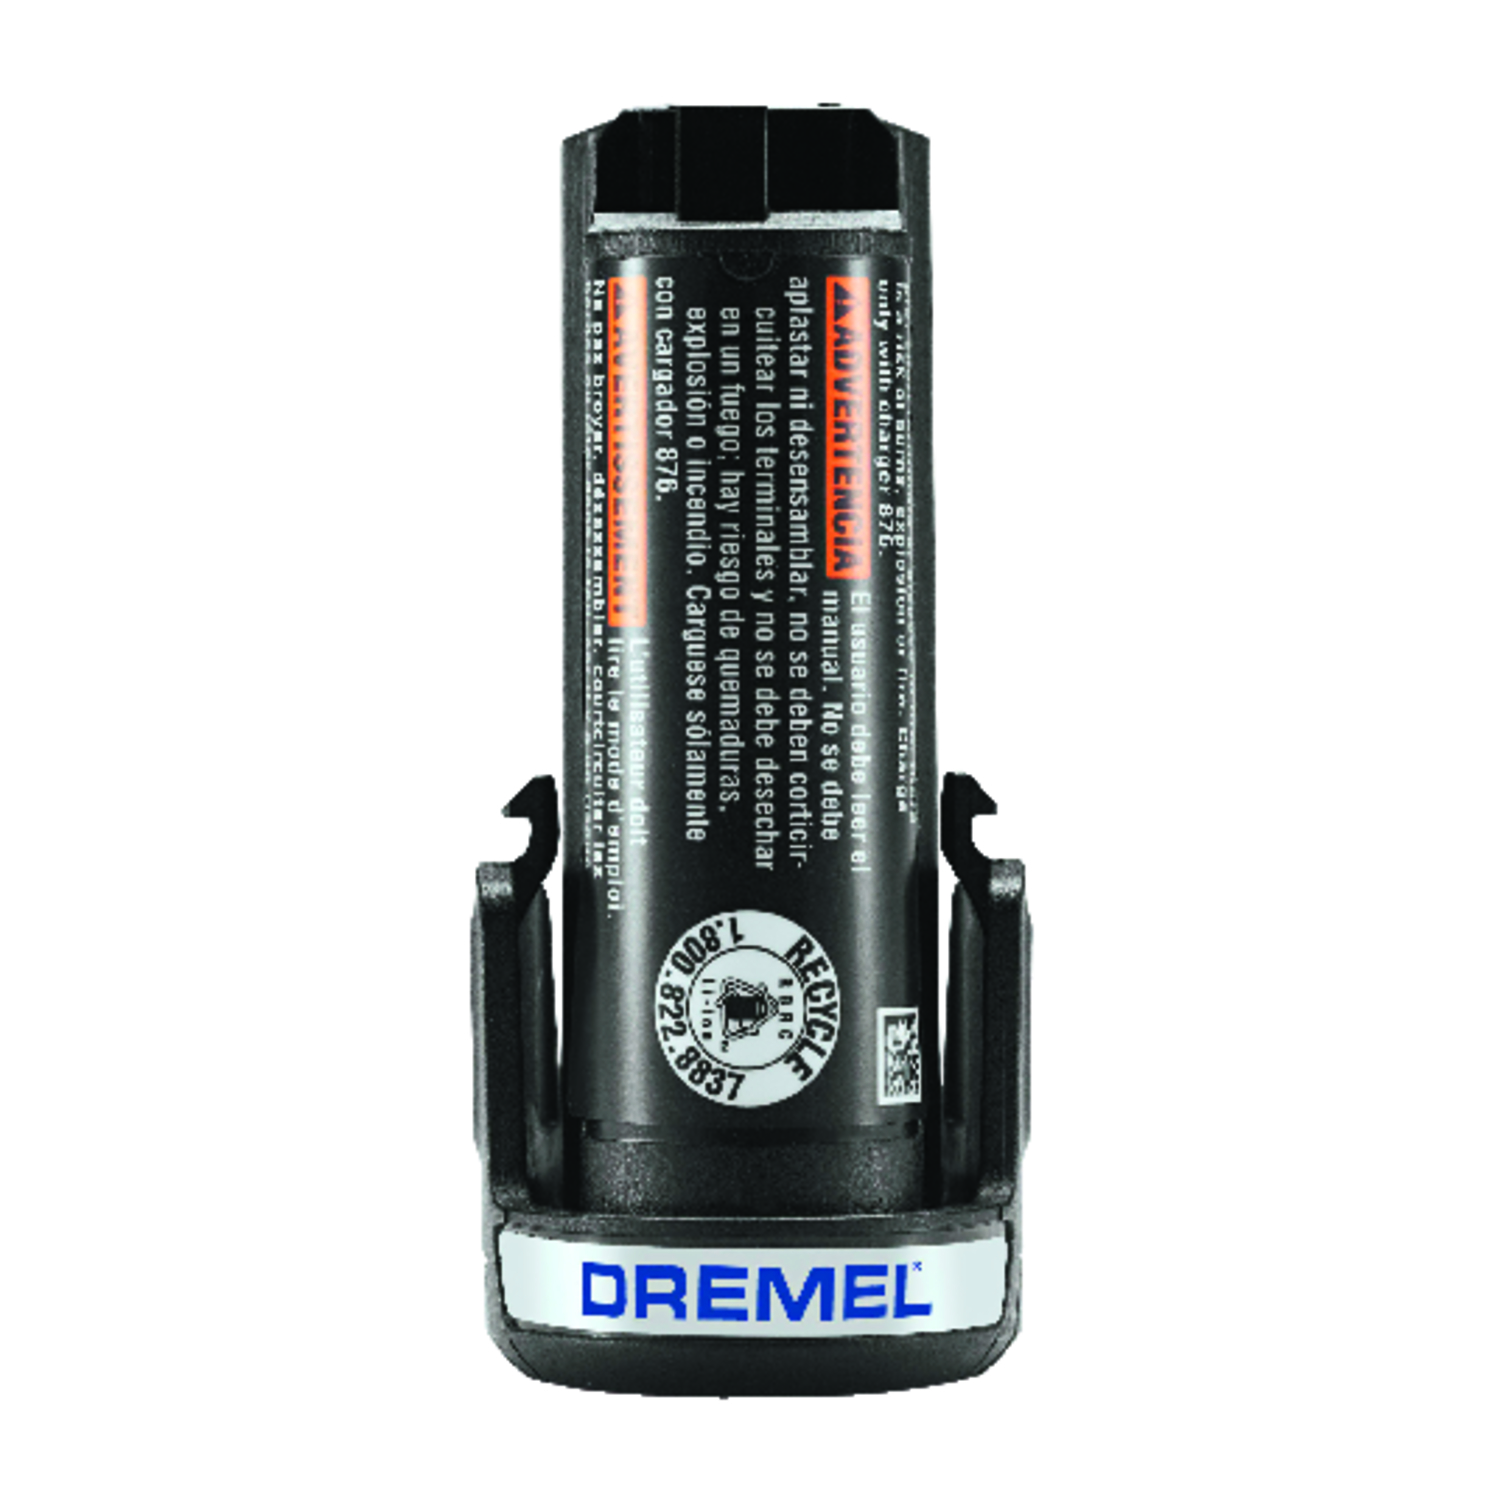 Dremel  8 volts Battery Pack  1 pc. Lithium-Ion